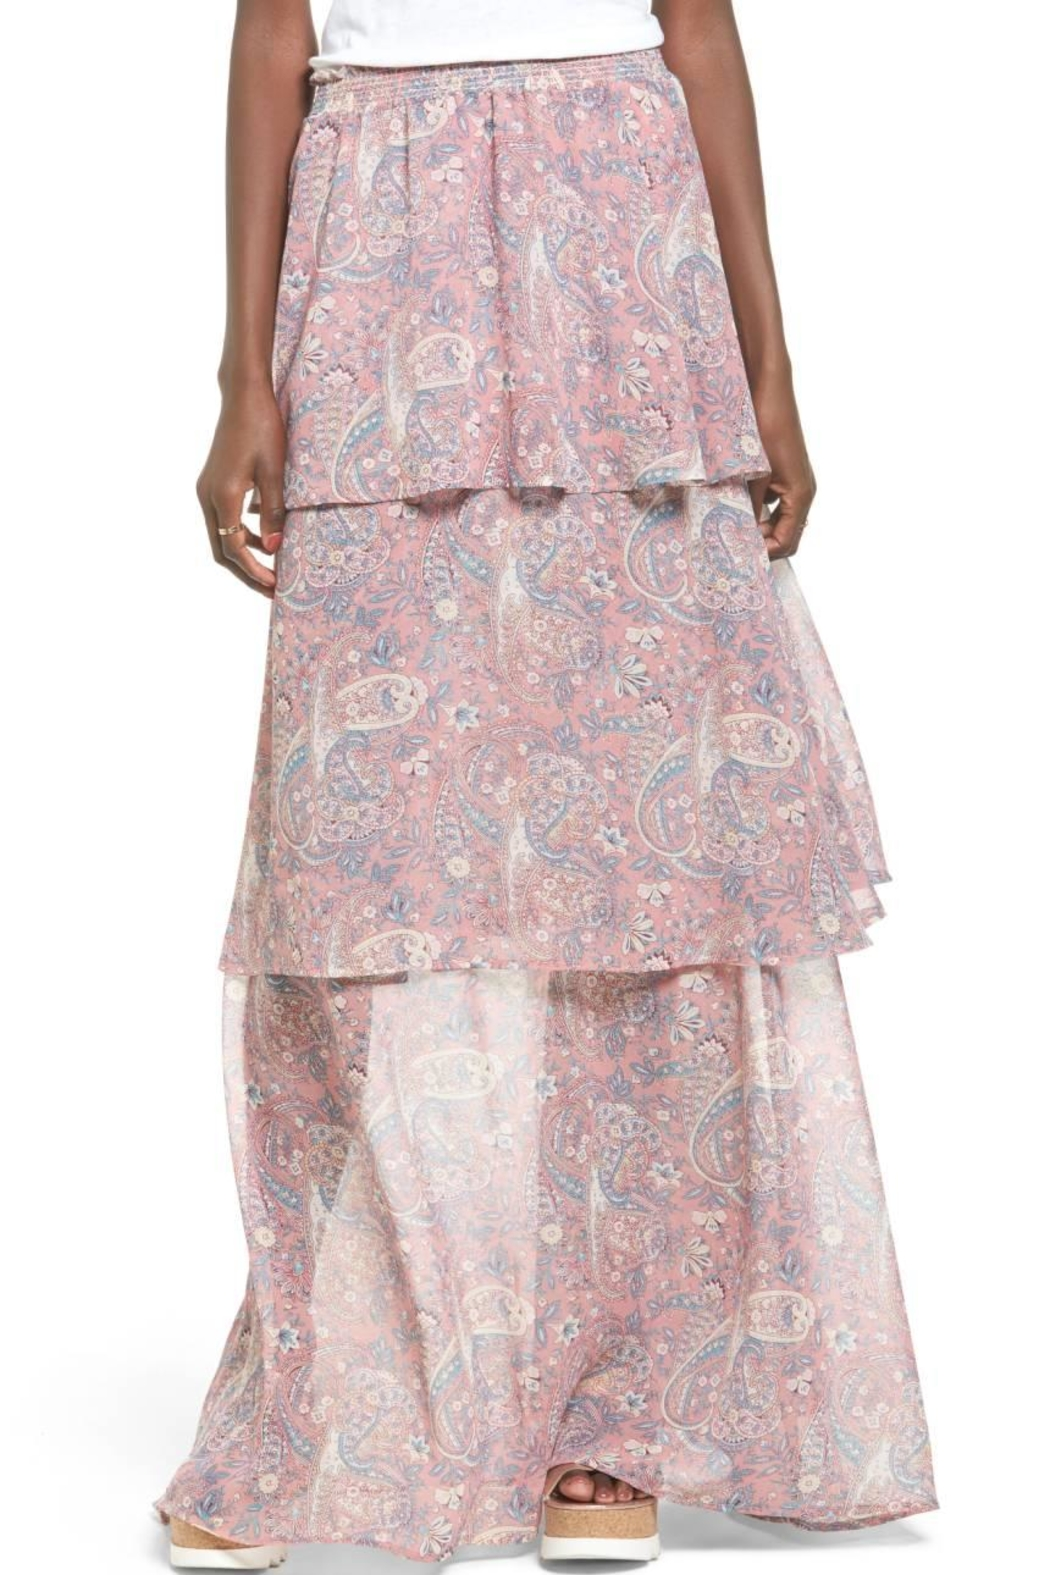 Show Me Your Mumu Pink Skirt Dress - Side Cropped Image